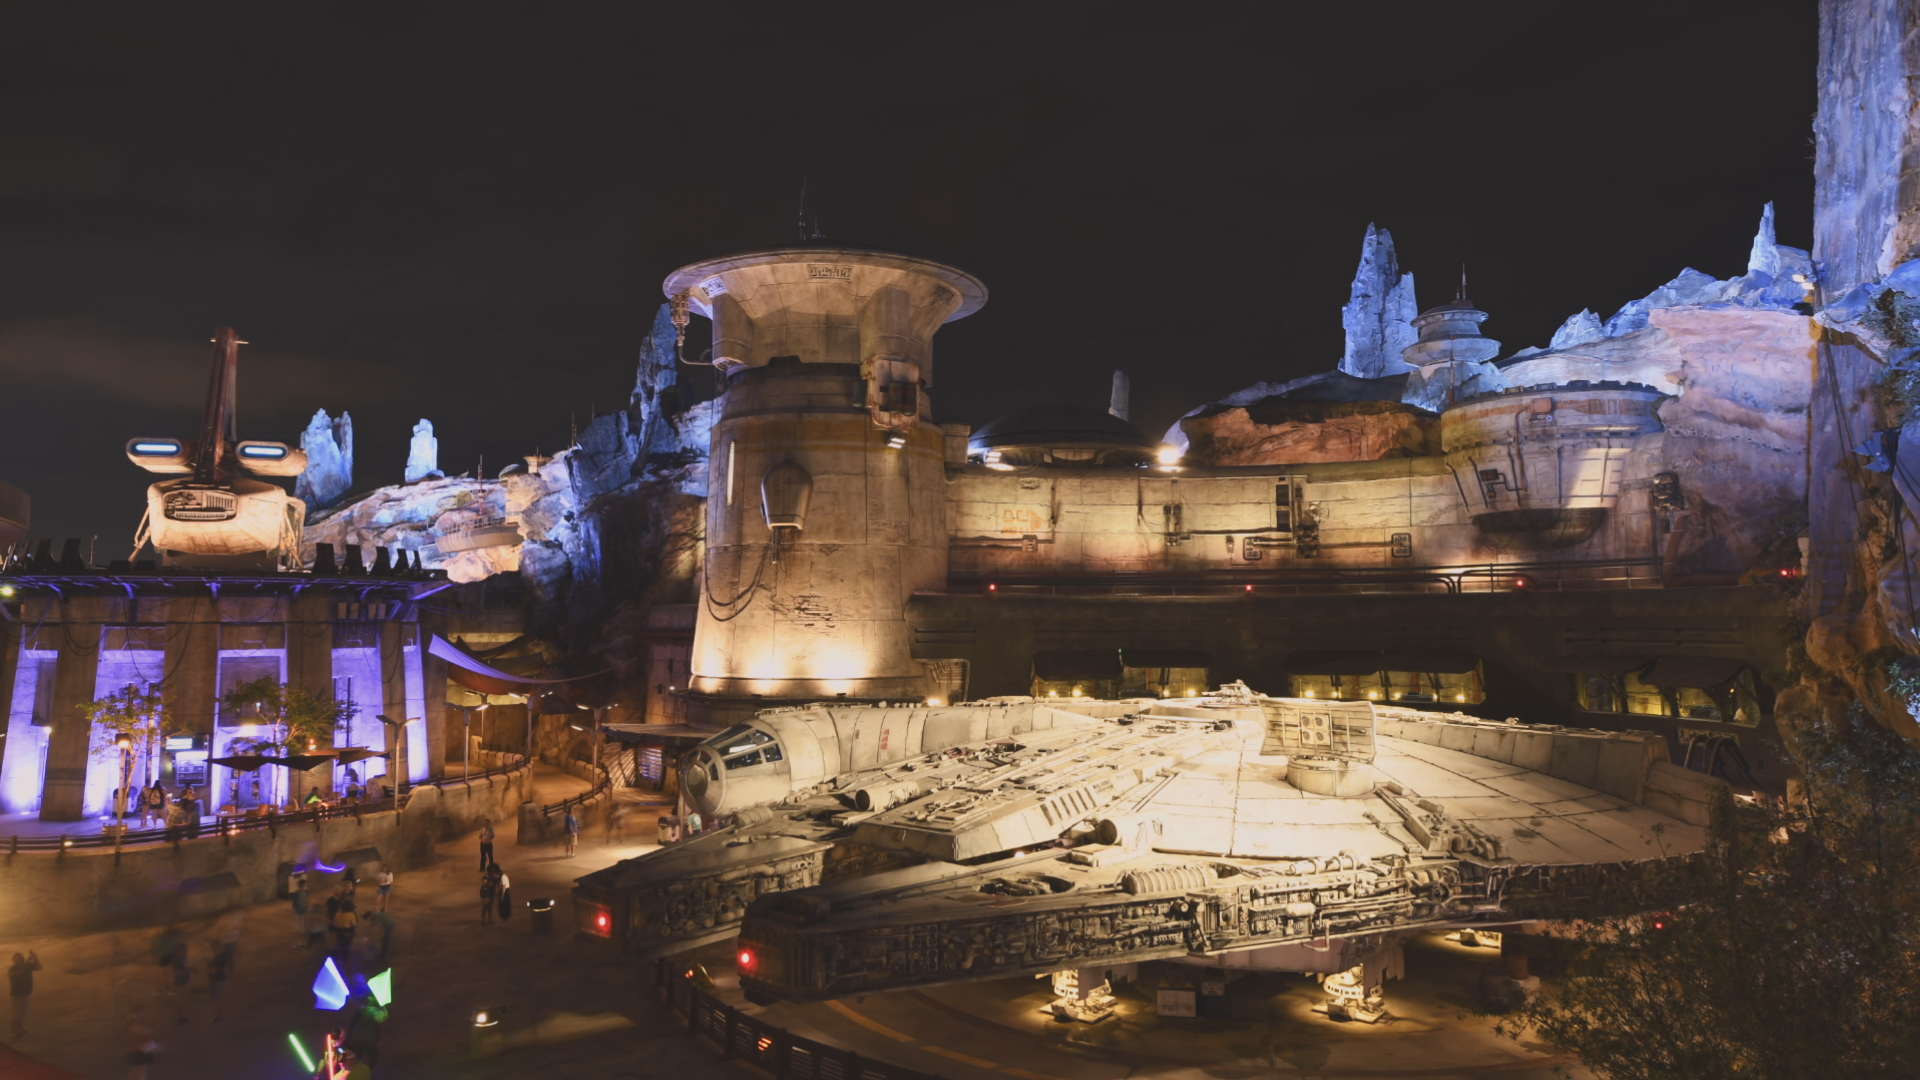 The Millennium Falcon at Star Wars Galaxy's Edge